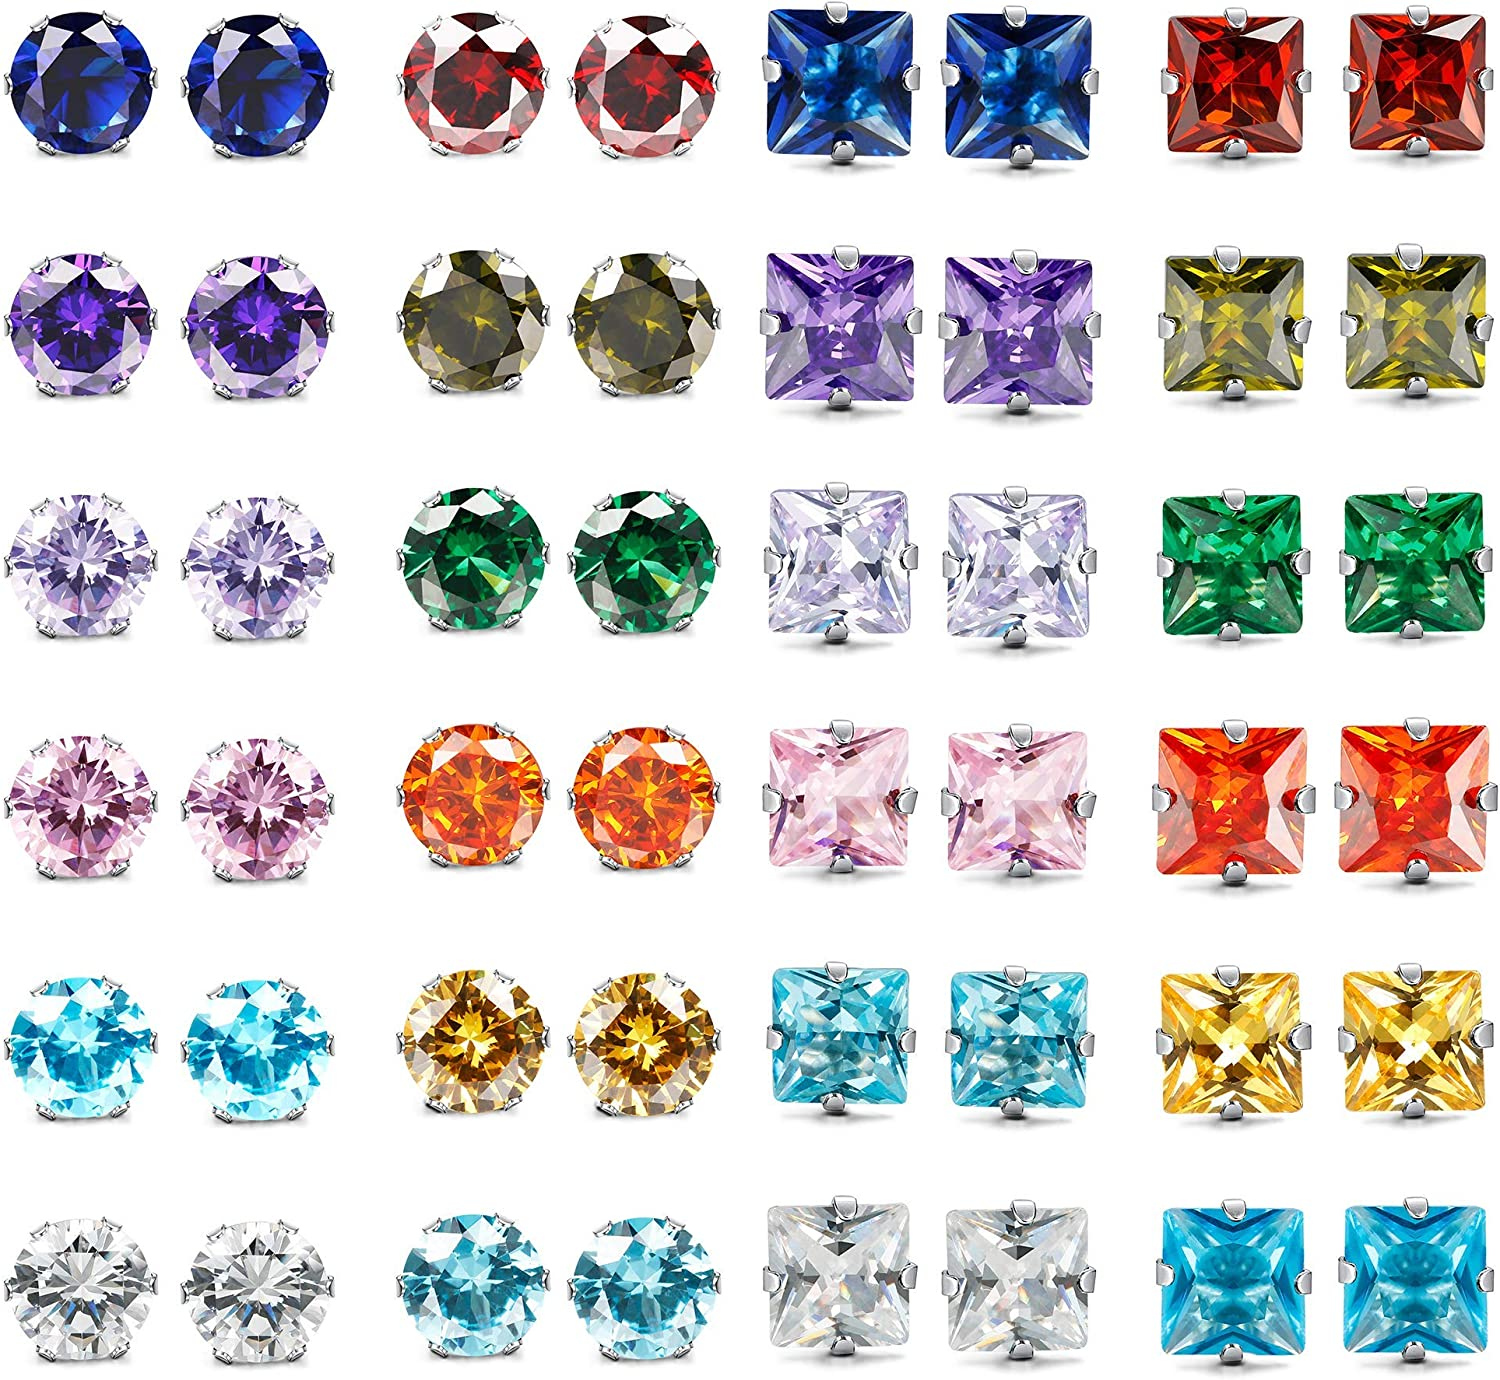 XCOIN 24 Pairs Stainless Steel CZ Stud Earrings for Women Men Round Square Cubic Zirconia Birthstone Earrings Piercing Set Jewerly Gifts